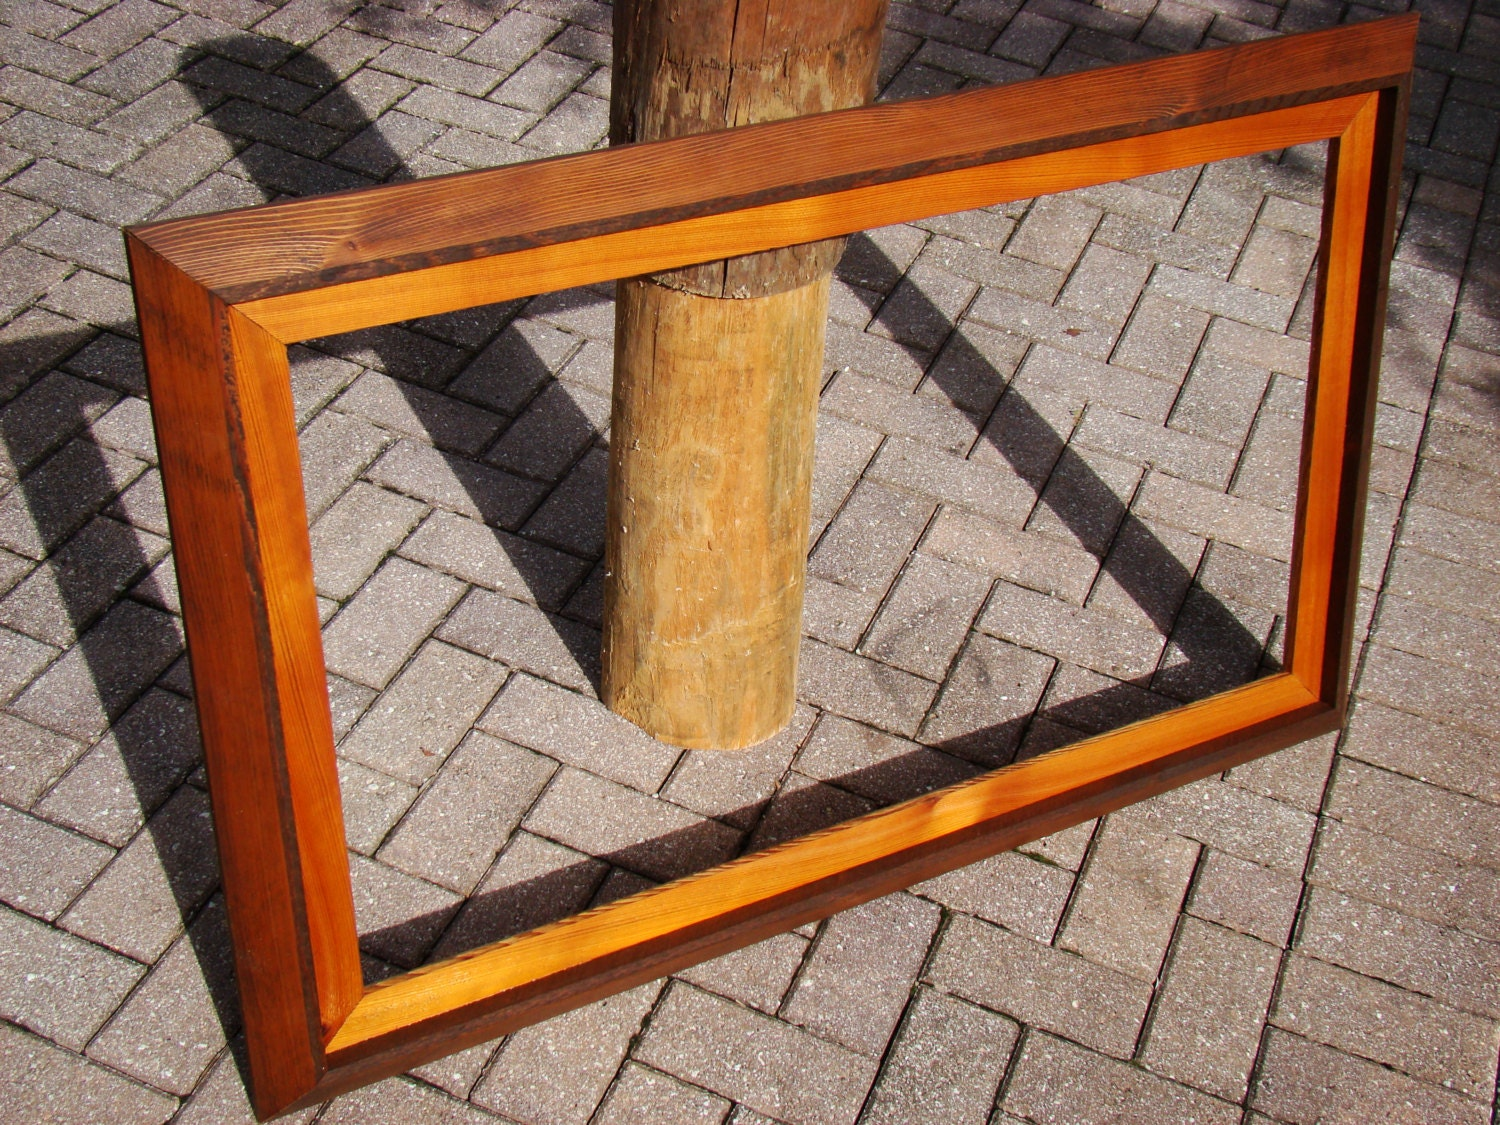 Extra large frame w/ 22x40 opening handmade from rustic red